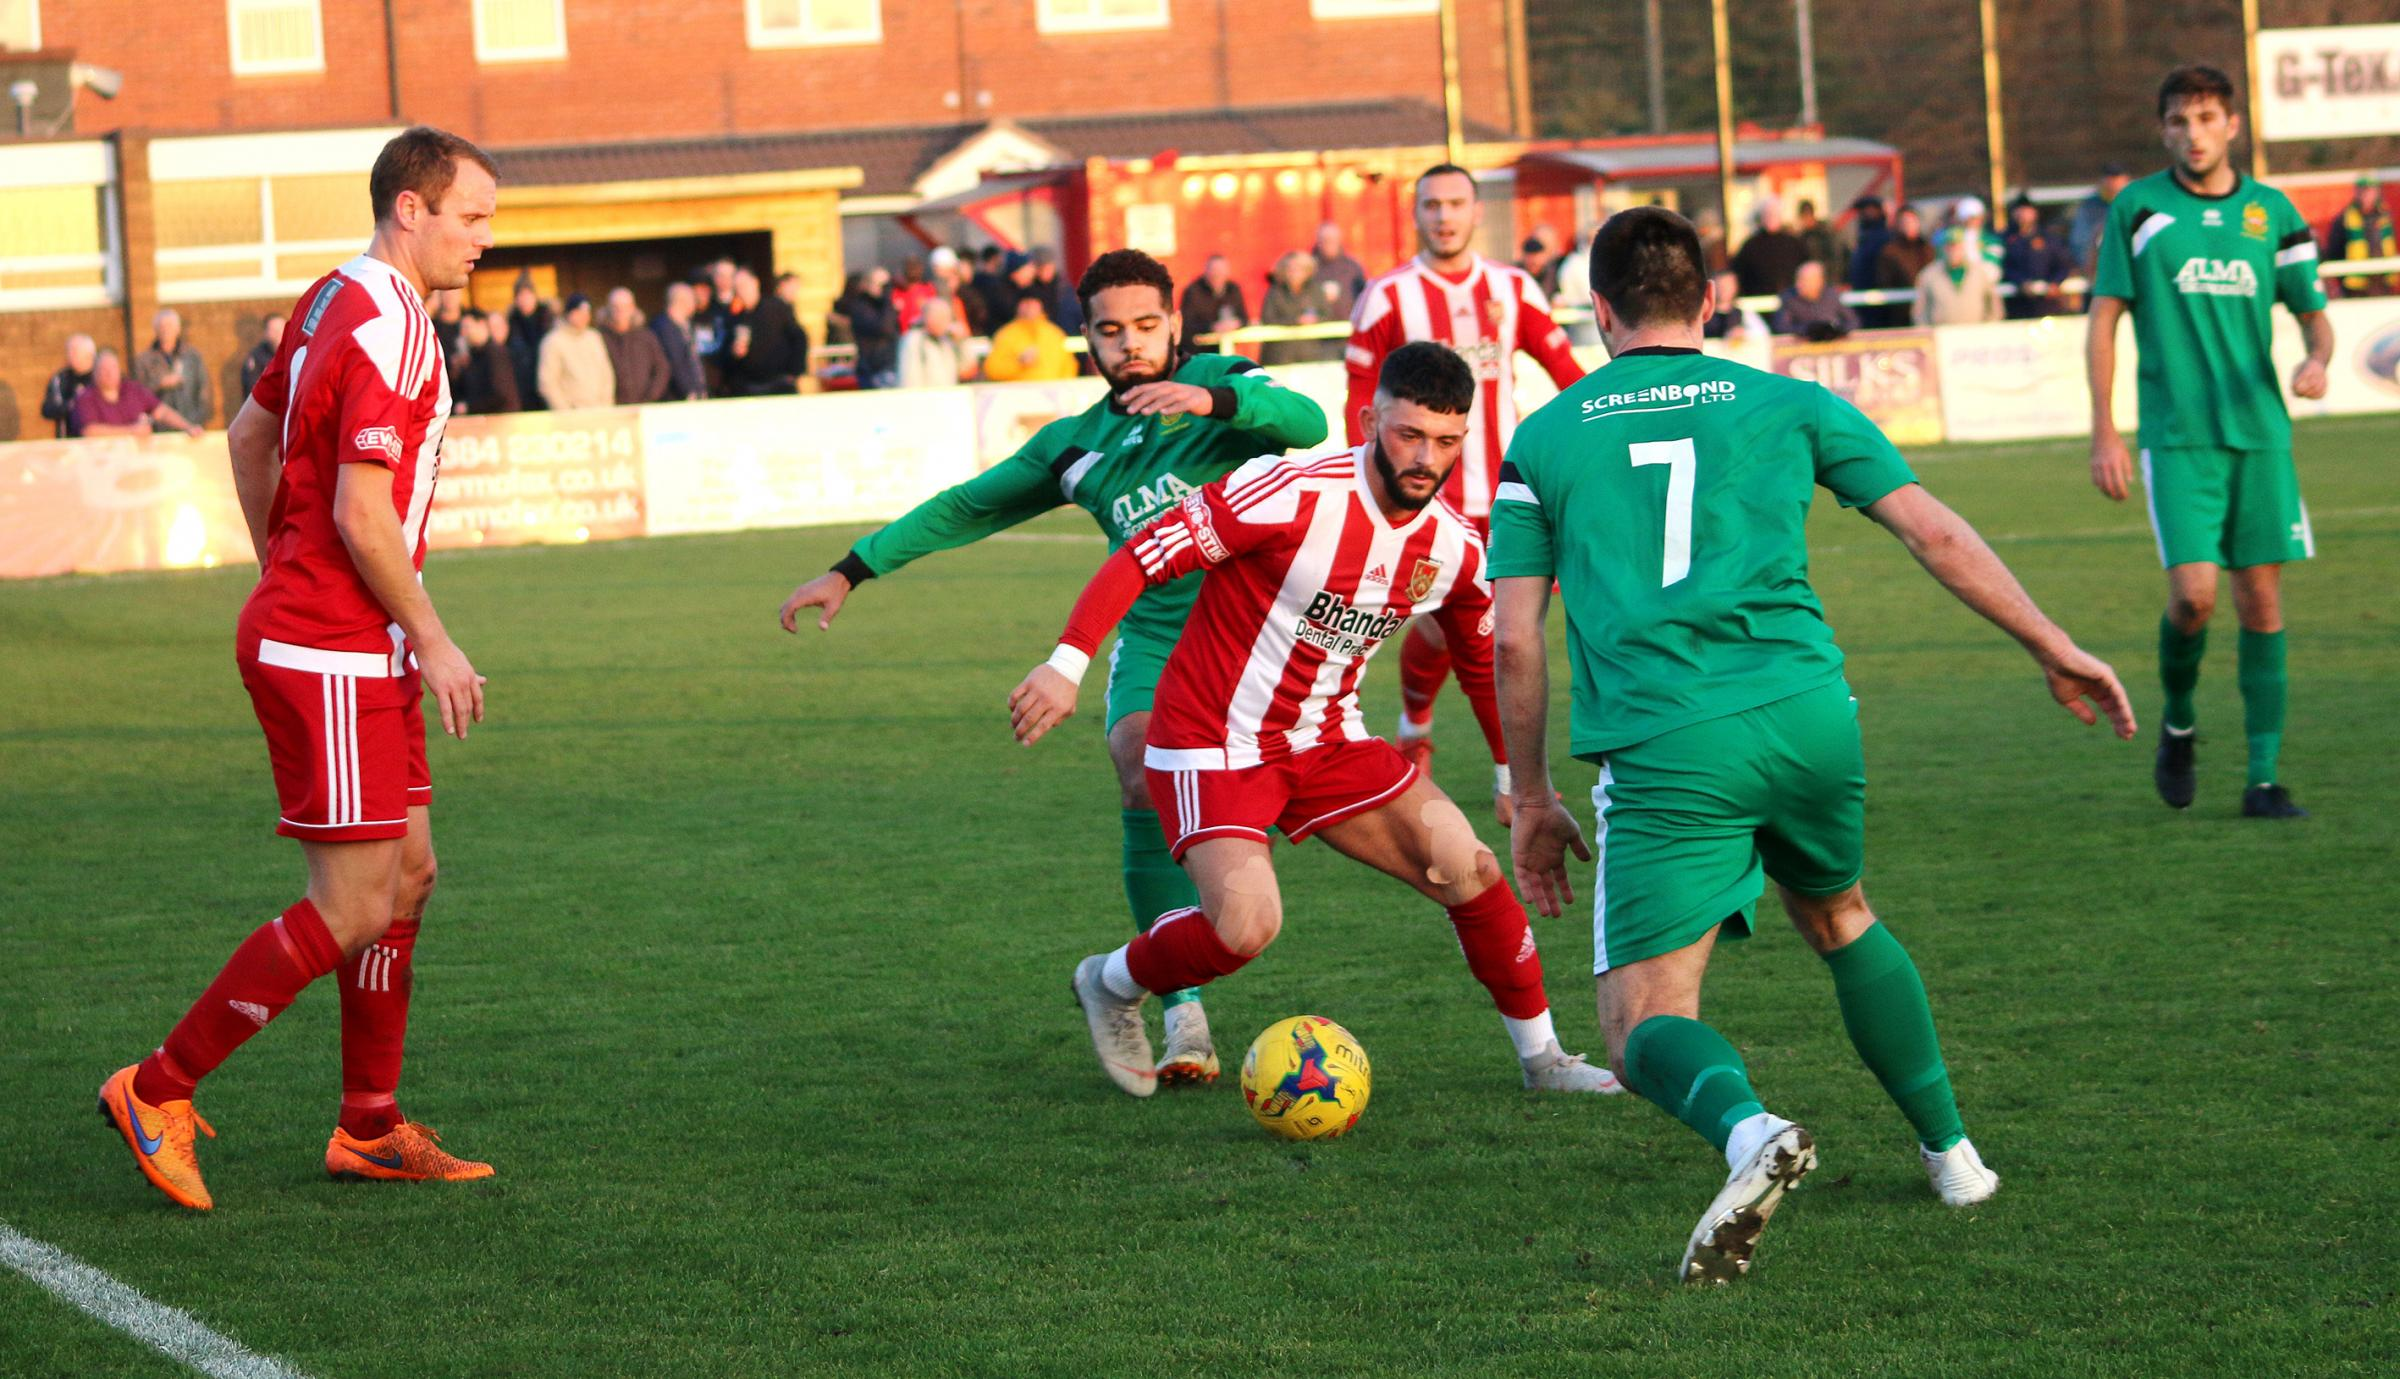 Callum Powell in action for Stour against Hitchin